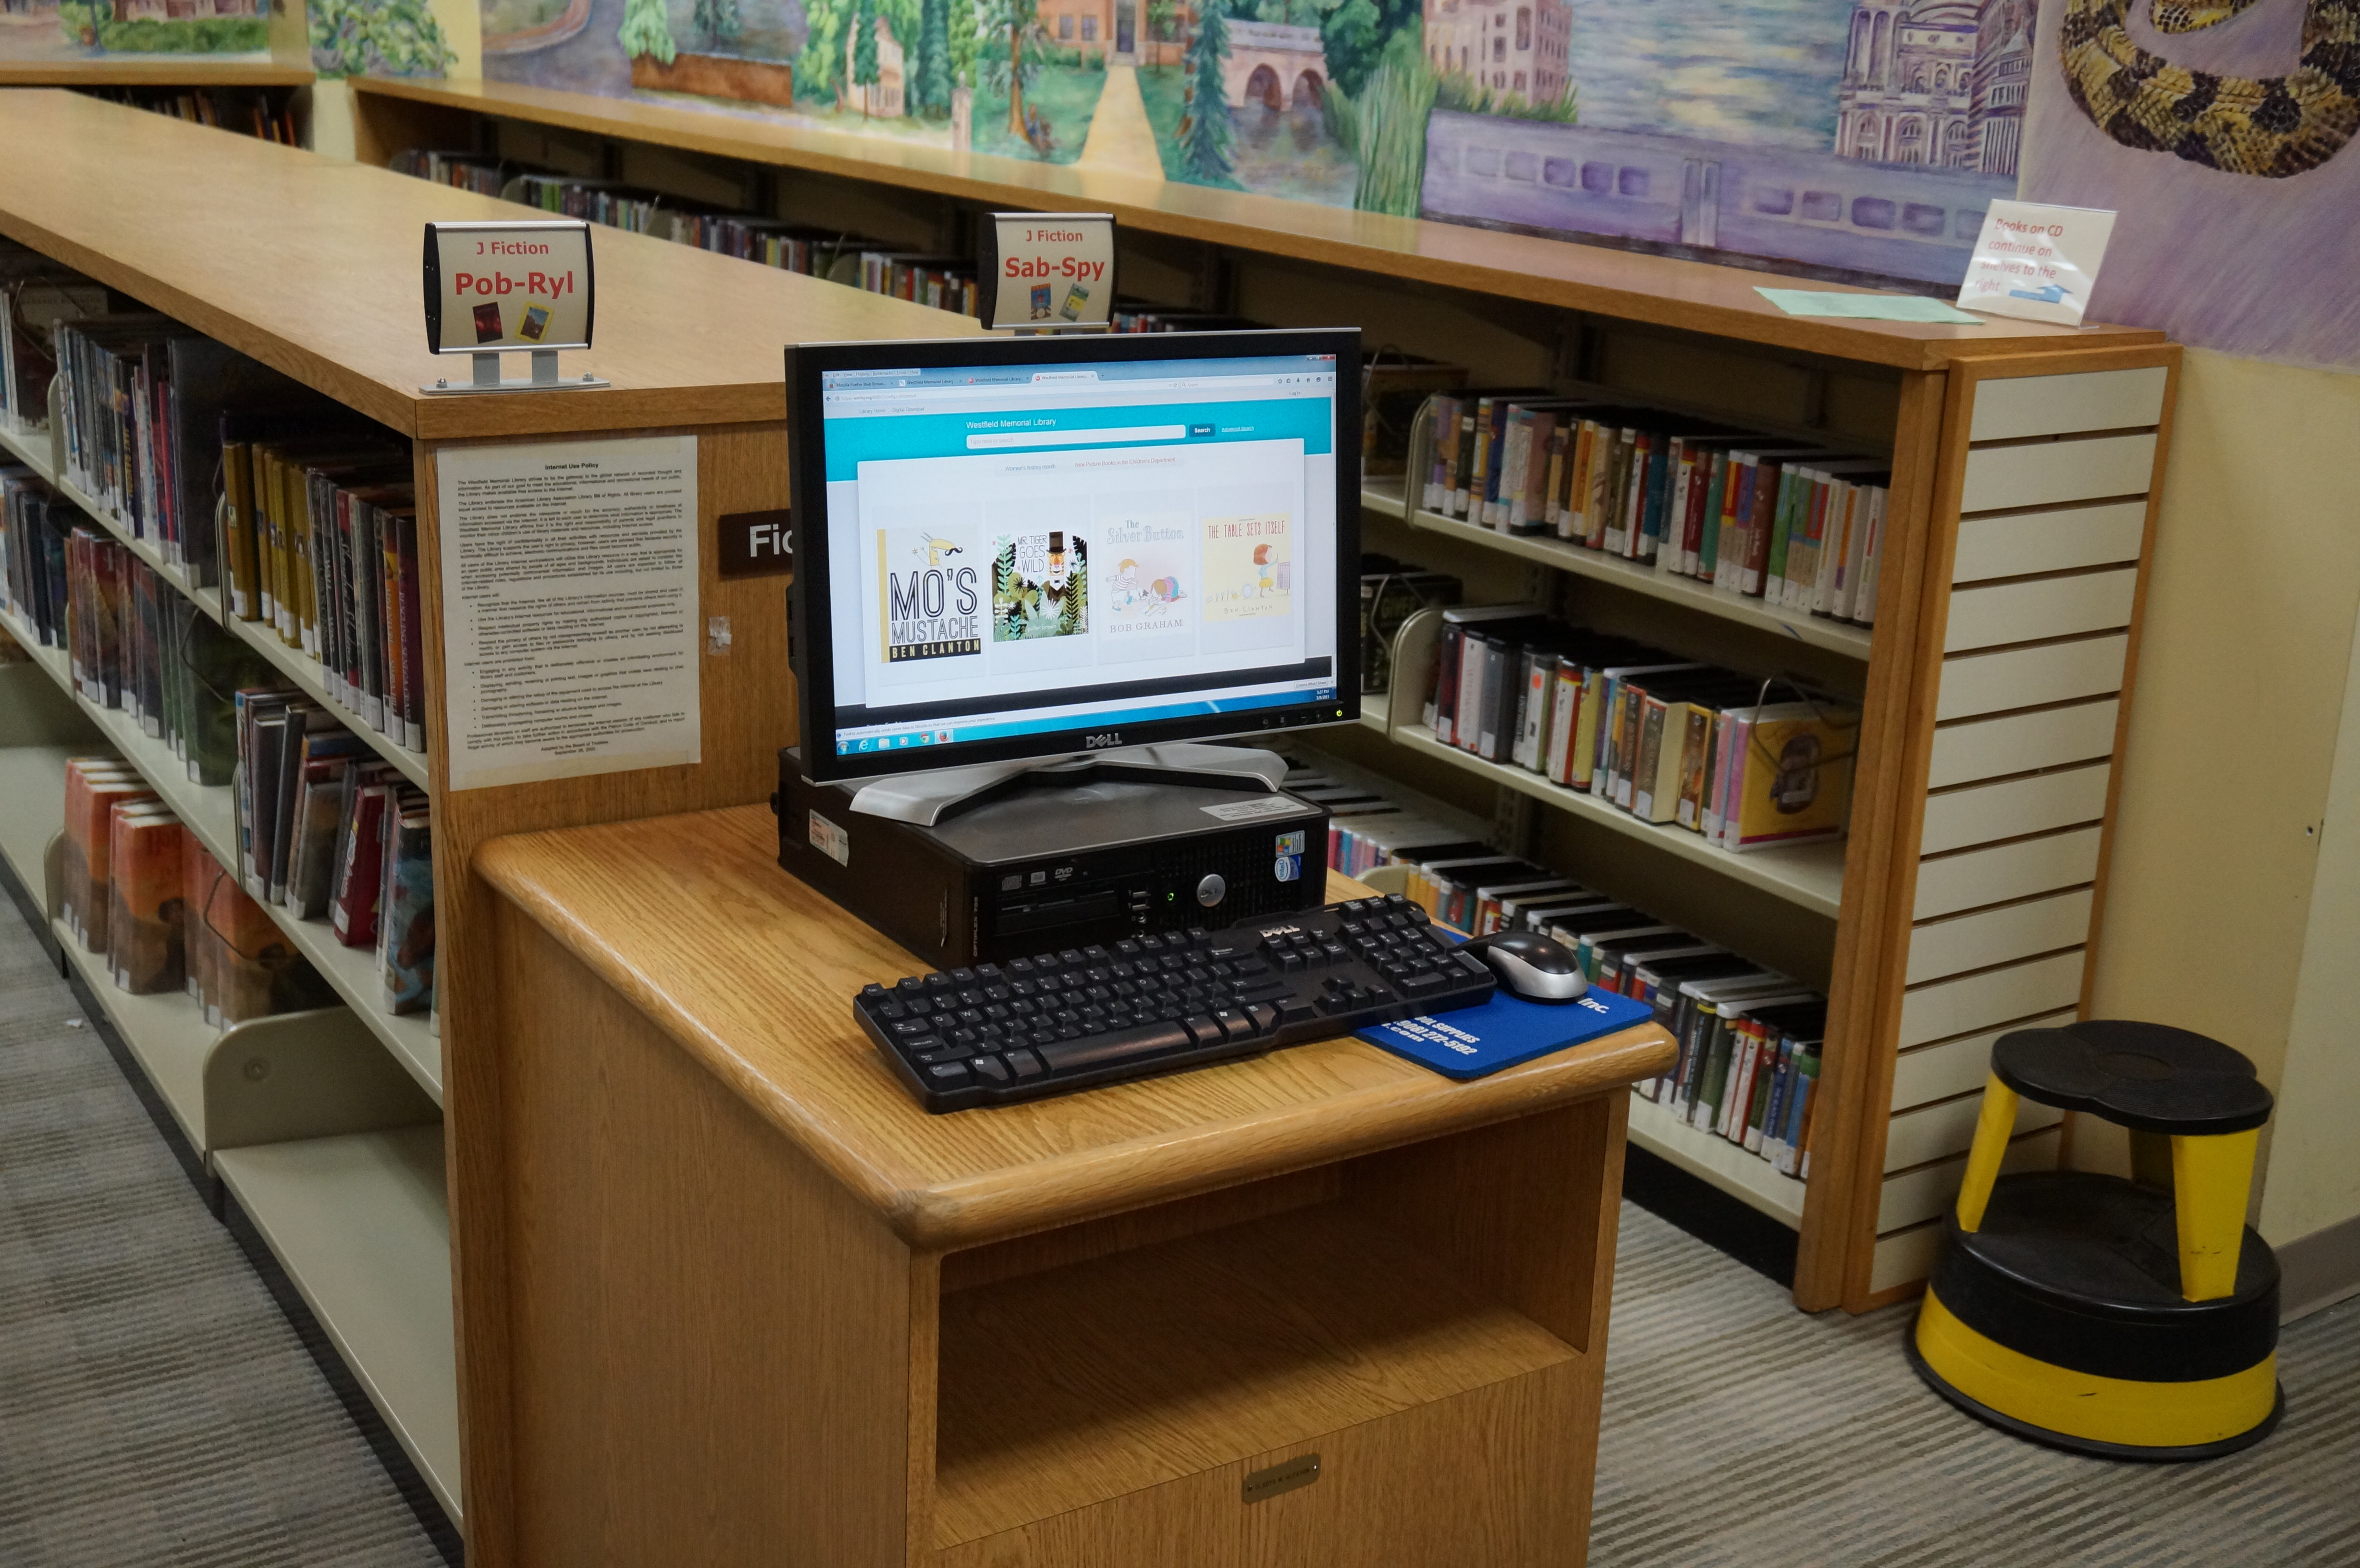 Westfield Library Gets Filters After Mom Said Child Saw